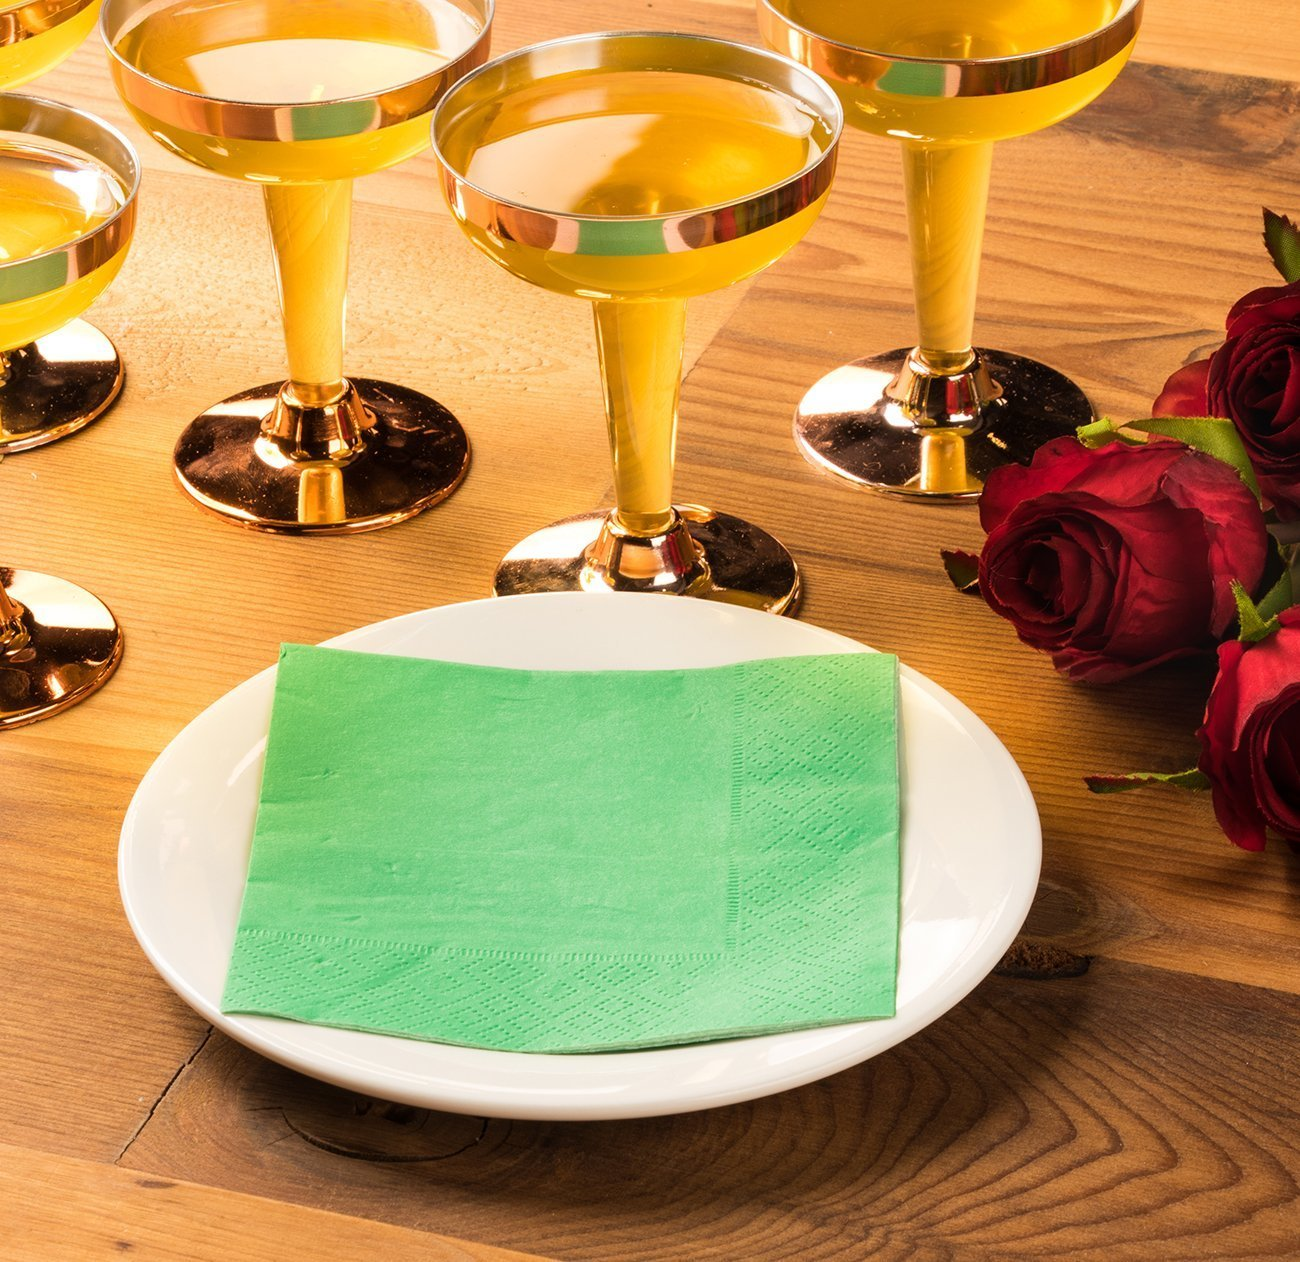 Cocktail Napkins - 200-Pack Disposable Paper Napkins, 2-Ply, Kelly Green, 5 x 5 Inches Folded by Blue Panda (Image #3)